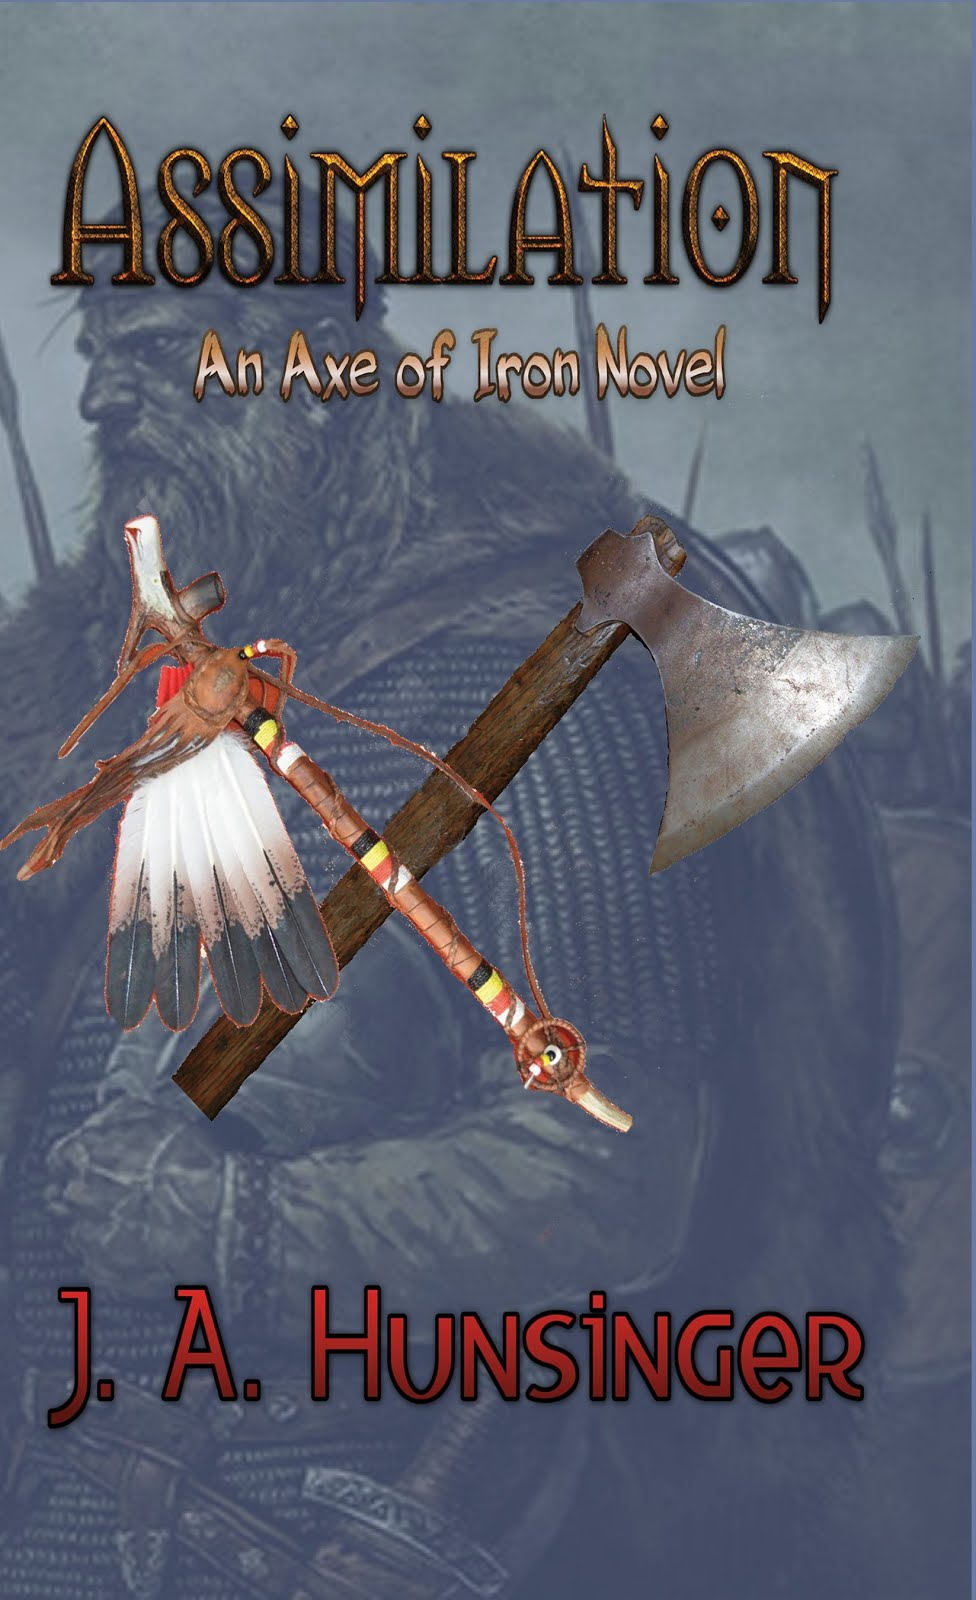 Assimilation, An Axe of Iron Novel